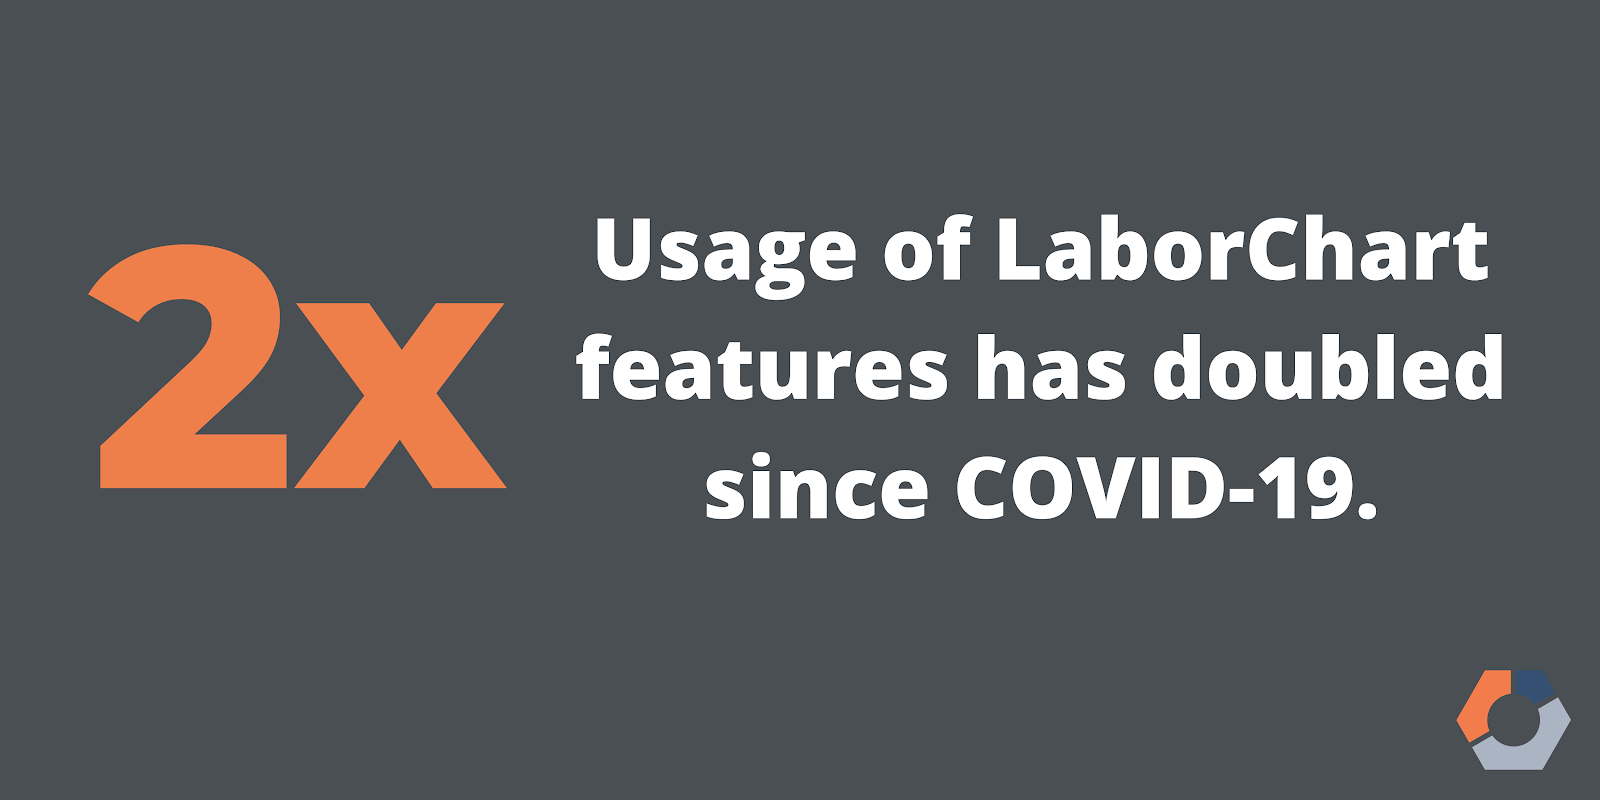 A graphic notes that usage of LaborChart features has doubled since COVID-19.